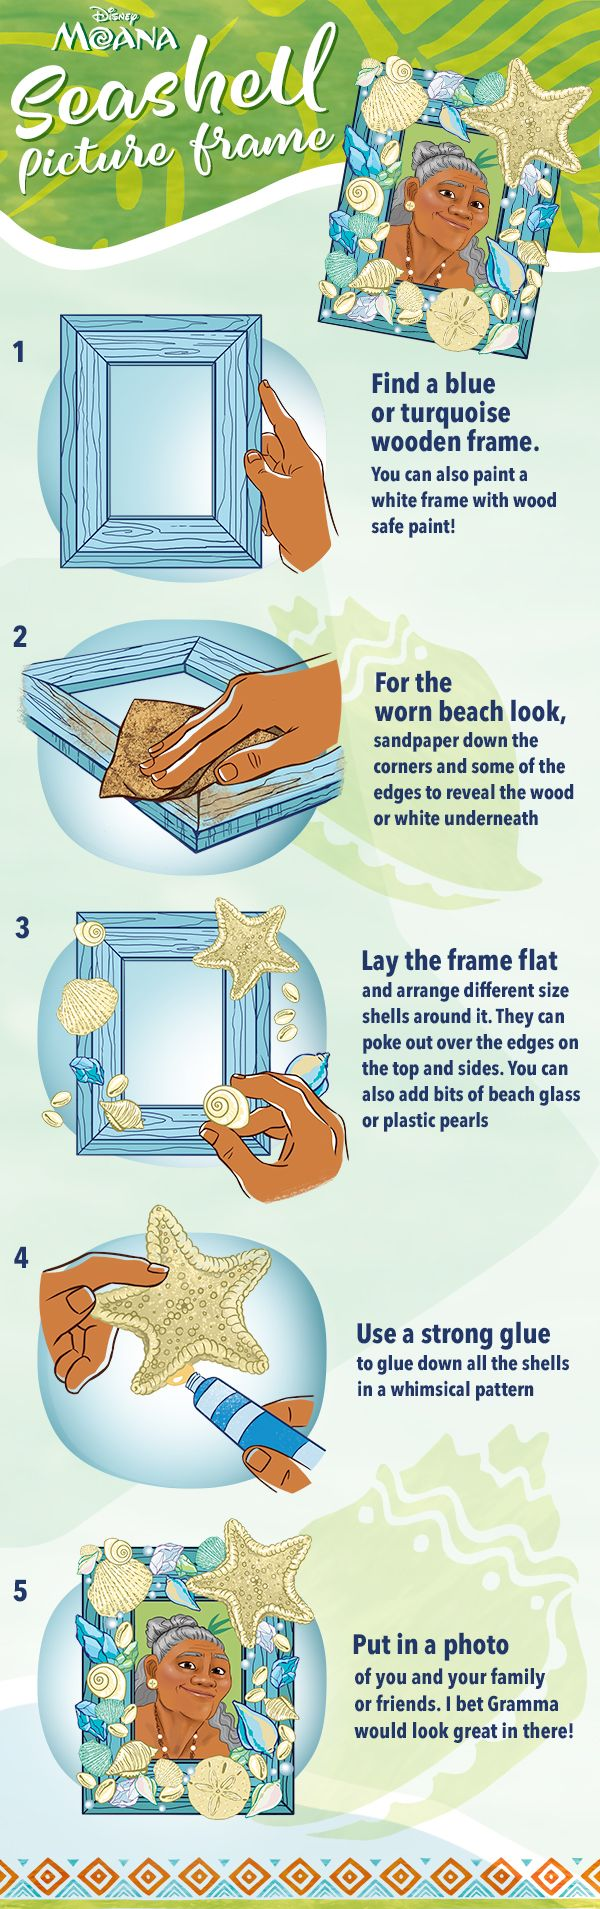 Grab the kiddos and brighten up your home with this DIY Moana Seashell Picture Frame.  Bring Moana home to your family today on Digital and Blu-ray Mar 7.